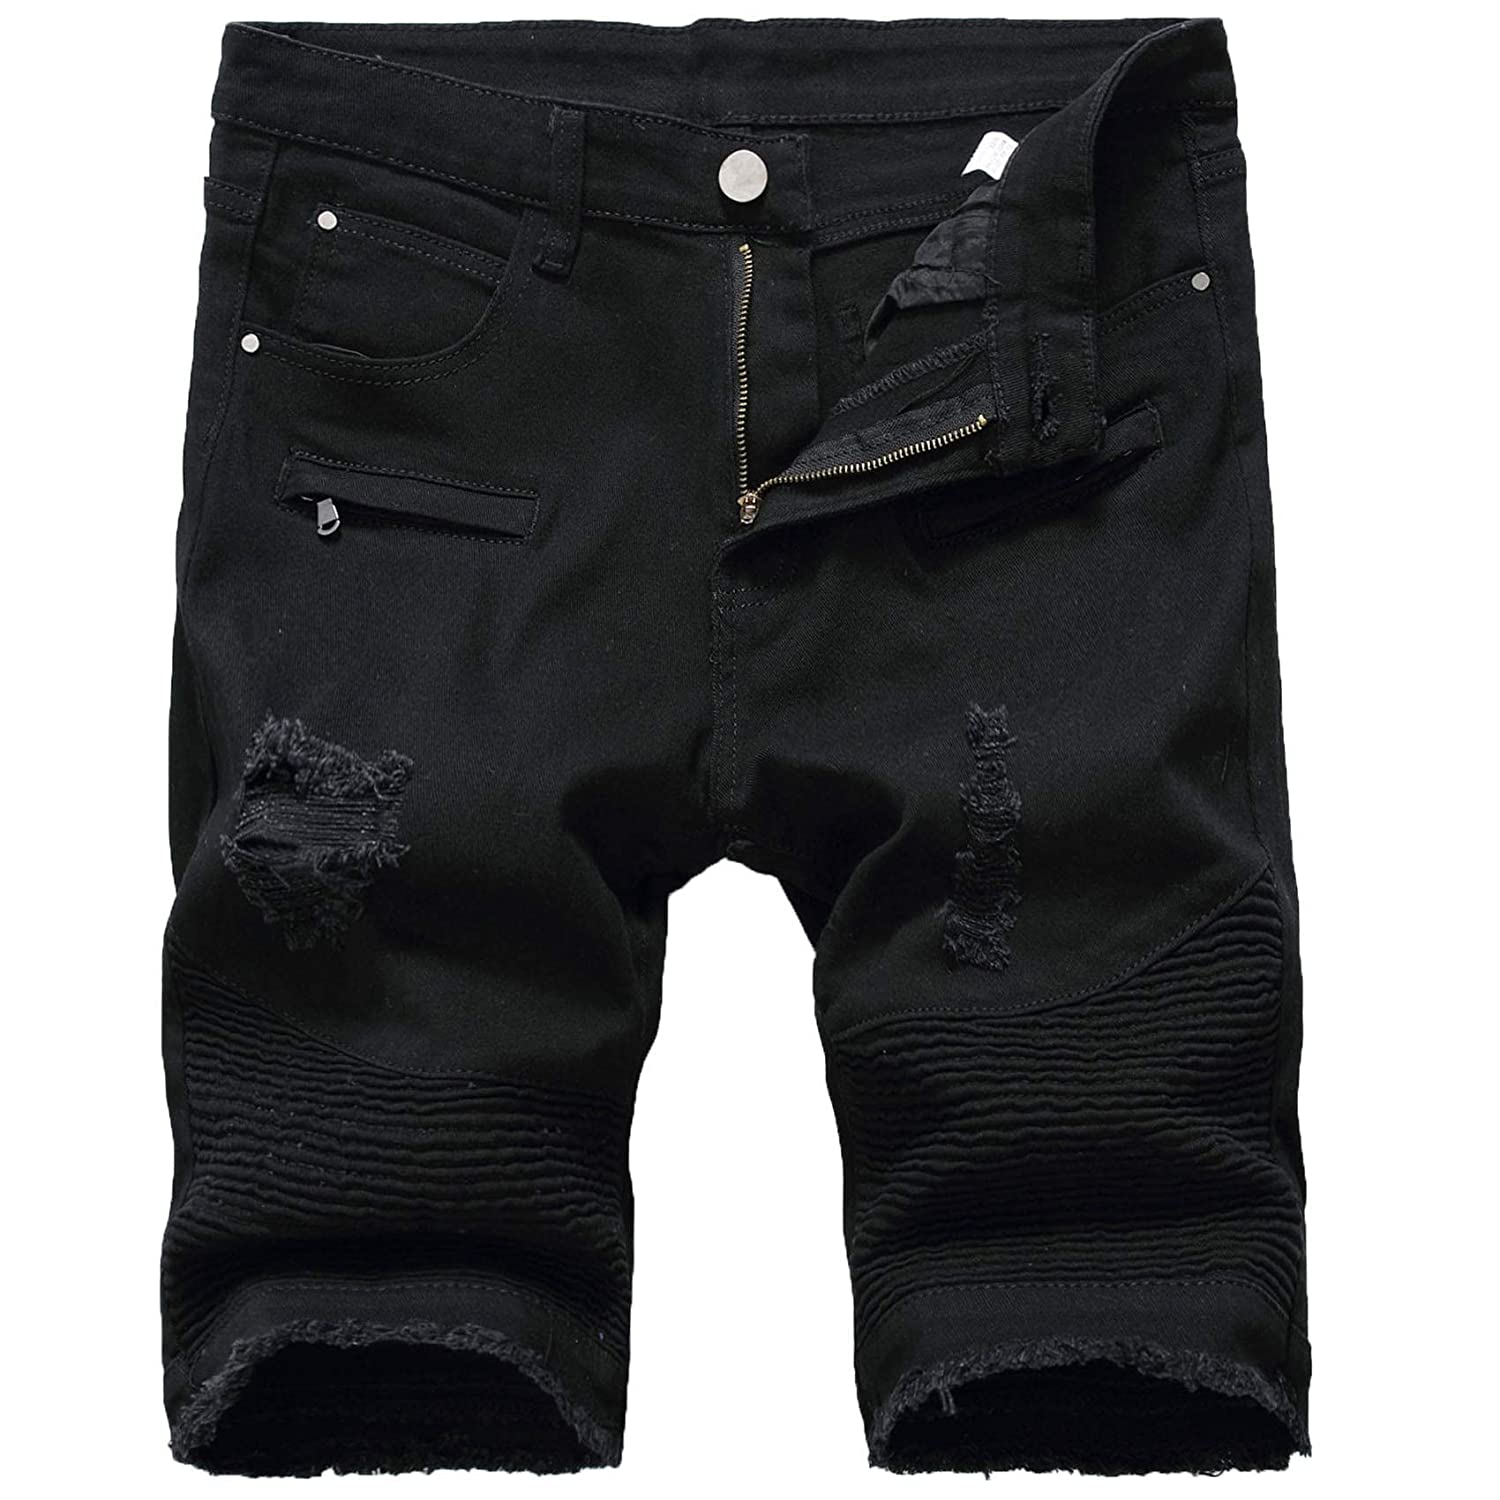 Men's Wrinkle Denim Shorts Mens Summer Ripped Short Jeans Classic Fit Ripped Jeans Biker Shorts Denim Shorts with Hole (Black hole,35)